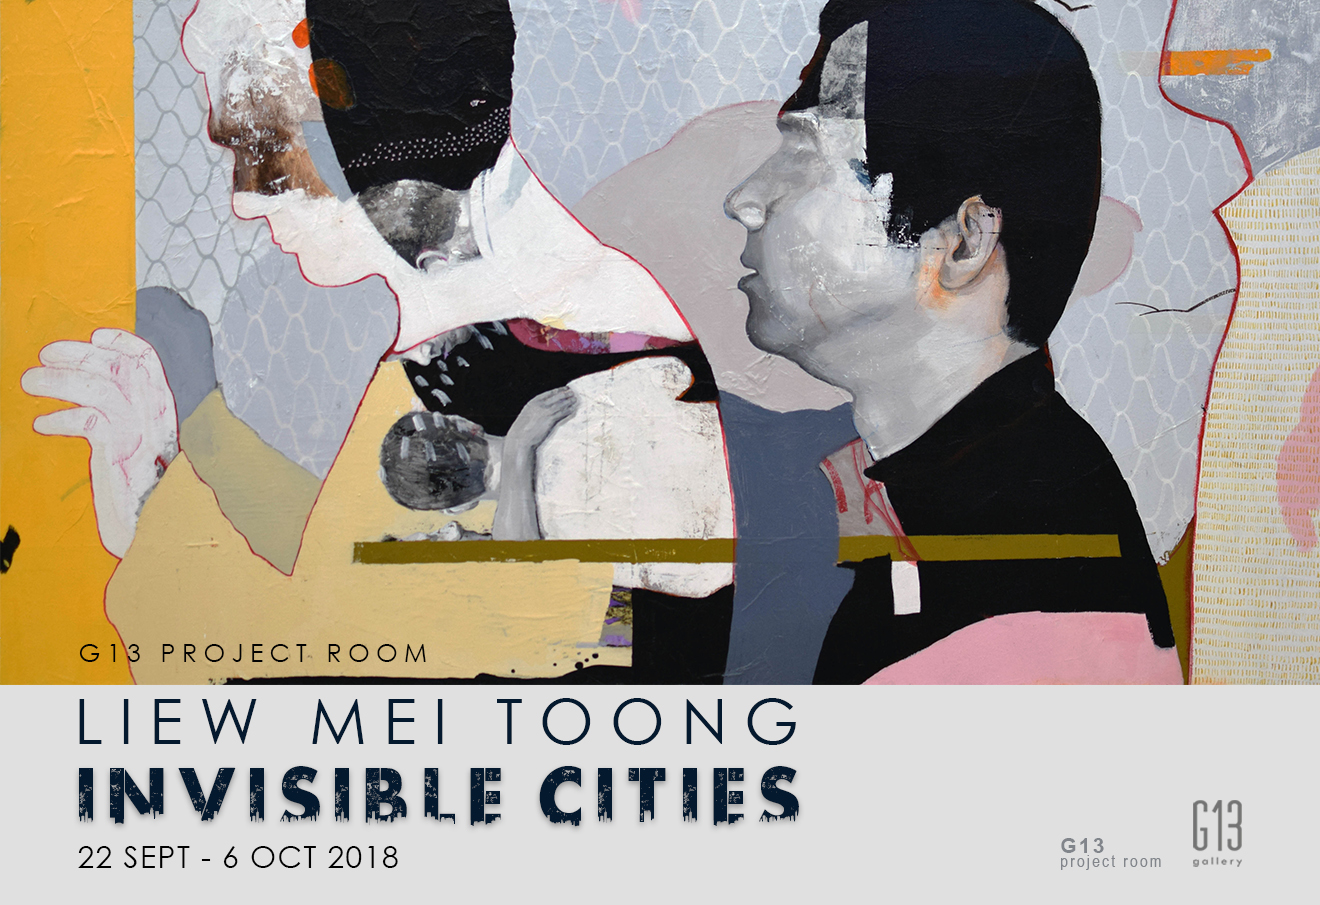 G13 Project Room: Invisible Cities by Liew Mei Toong